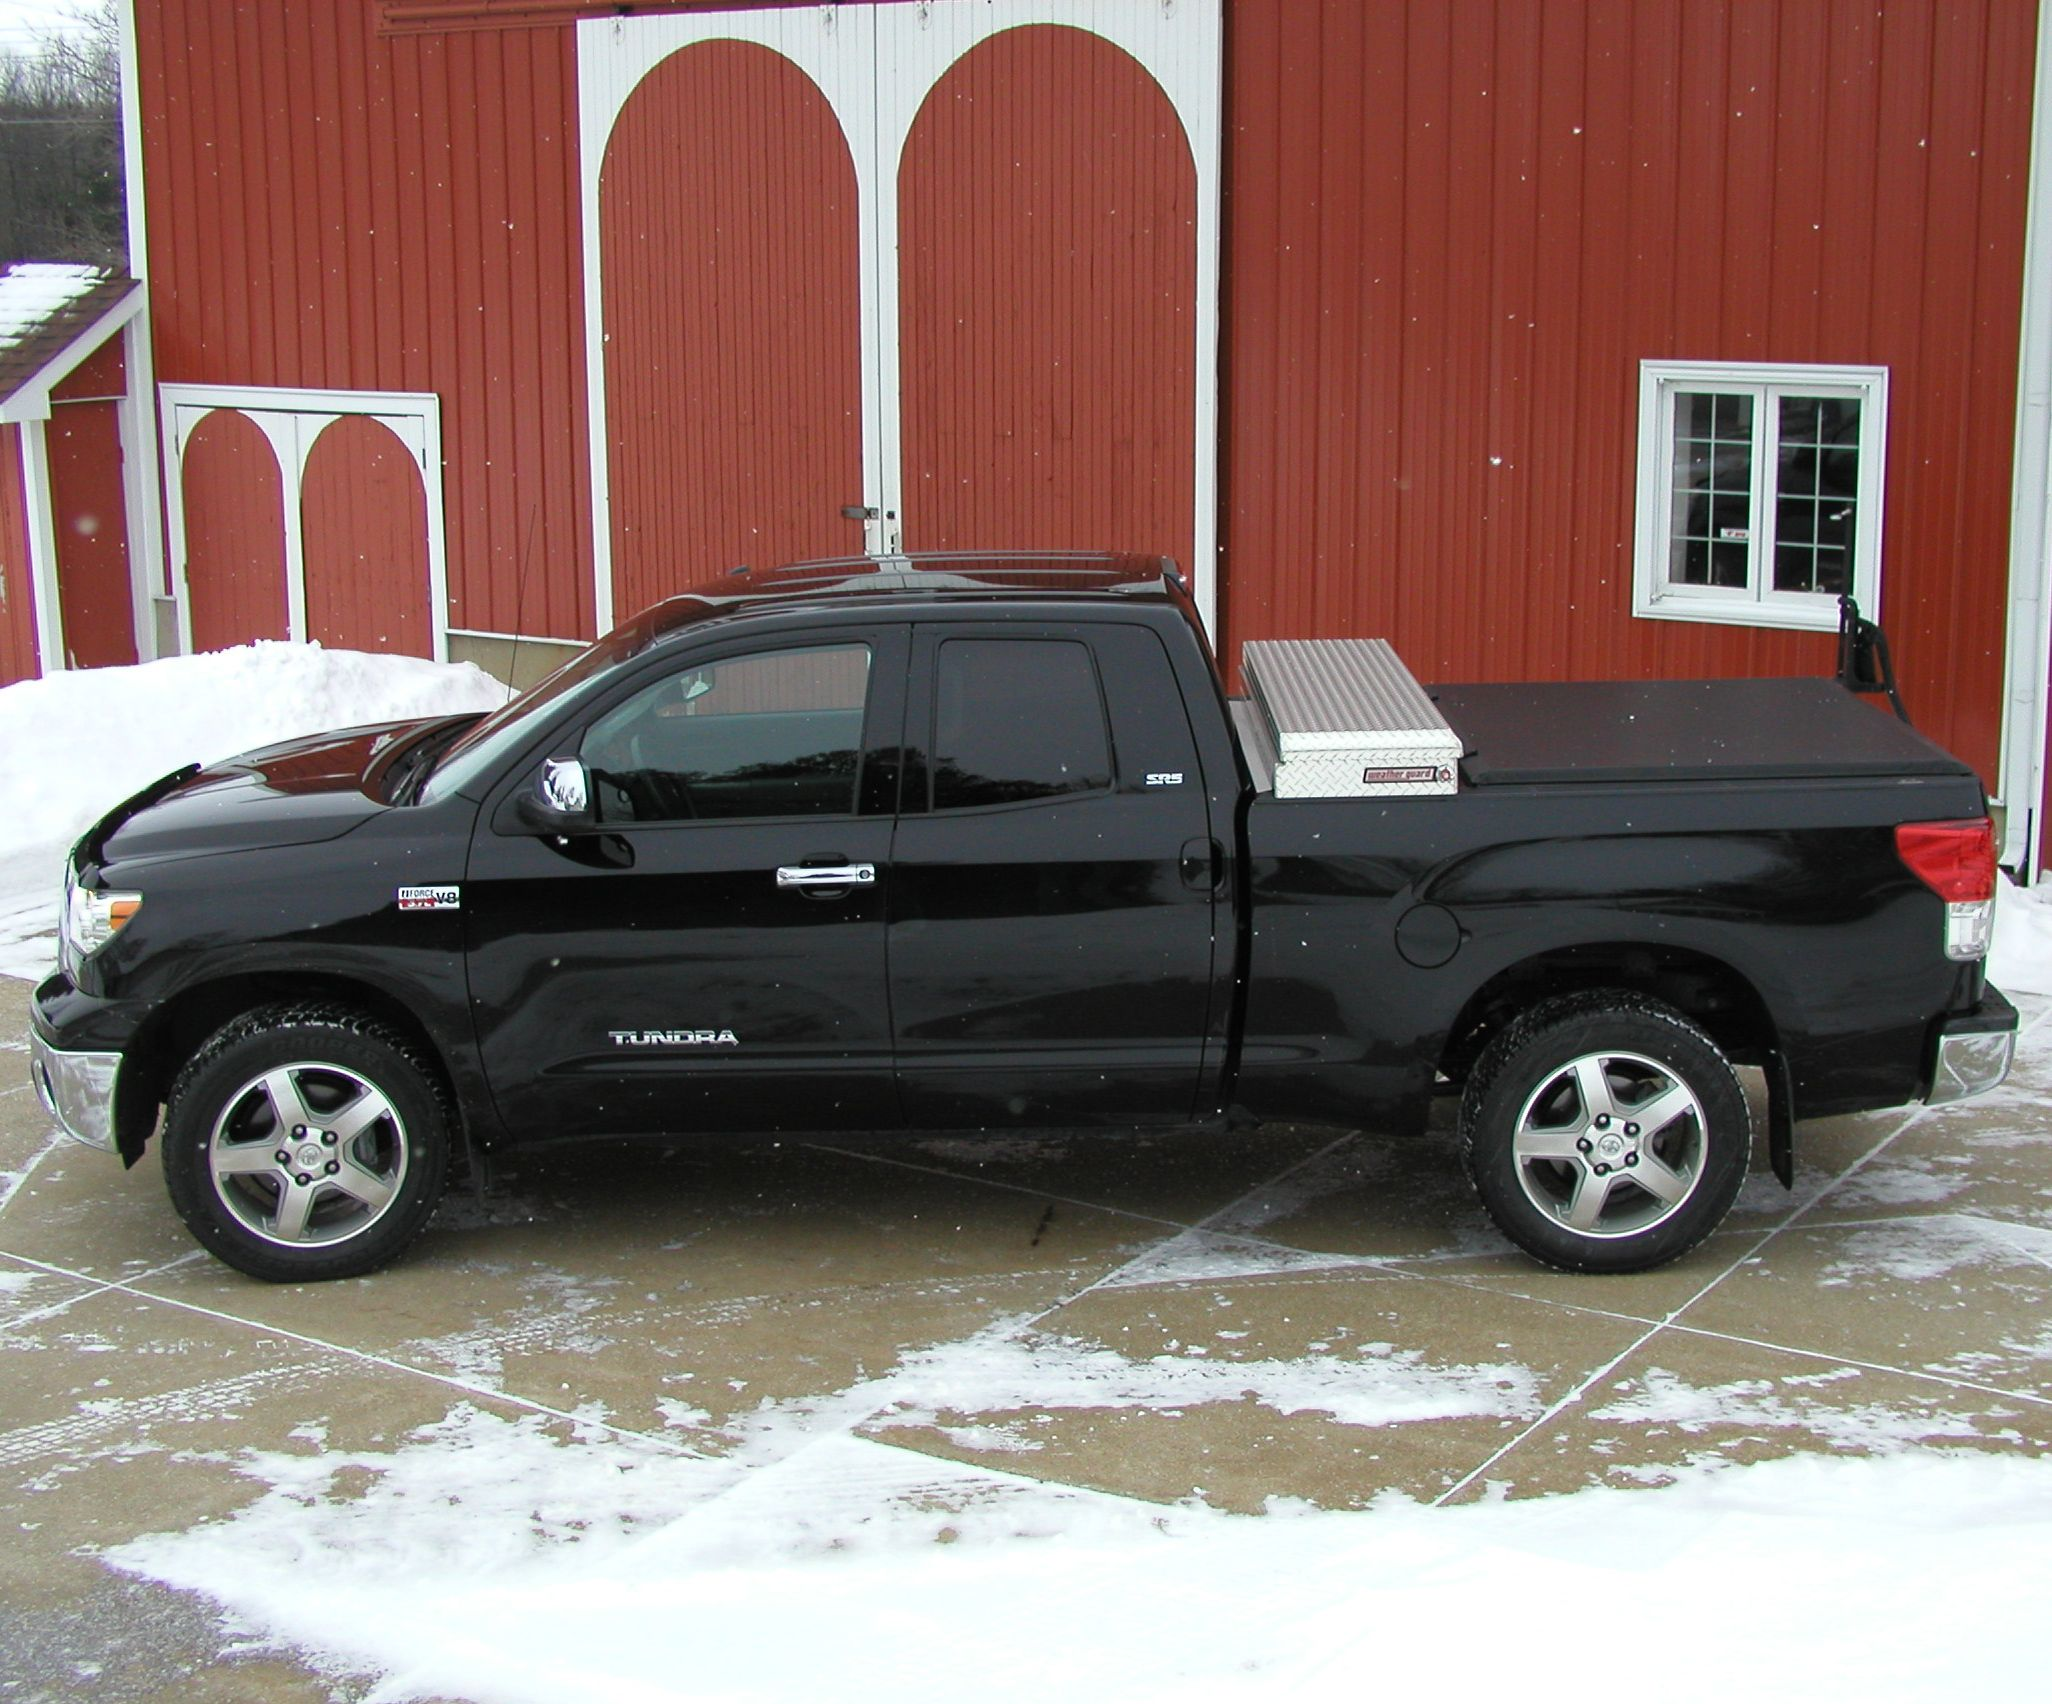 M.D.L. in Michigan sent us this shot of his Toyota Tundra